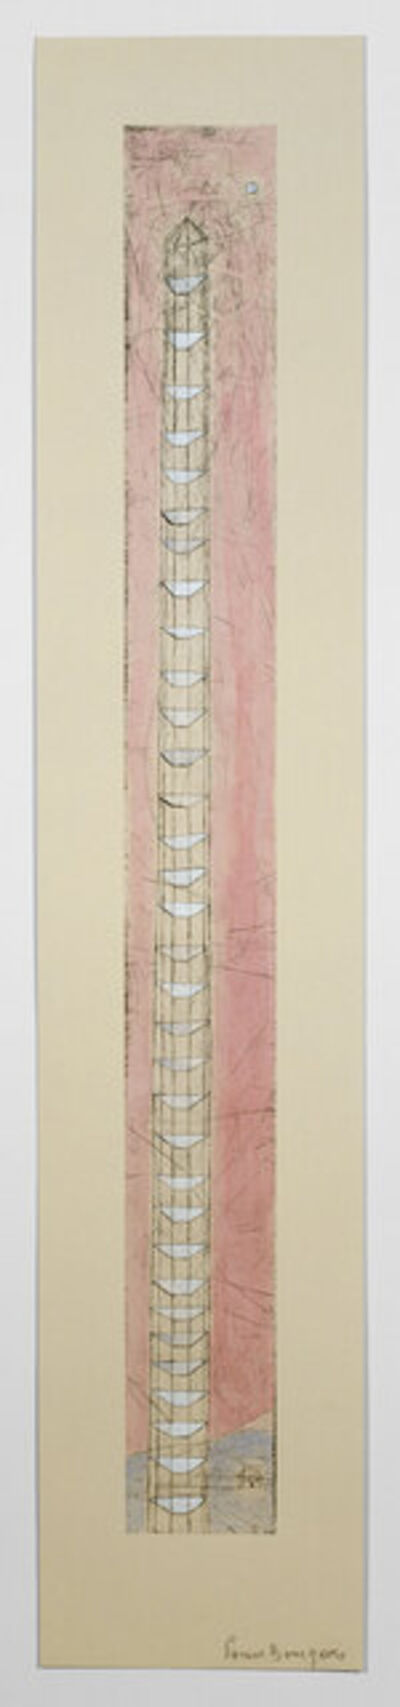 Louise Bourgeois, 'The Sky is the Limit', 1989 -2003